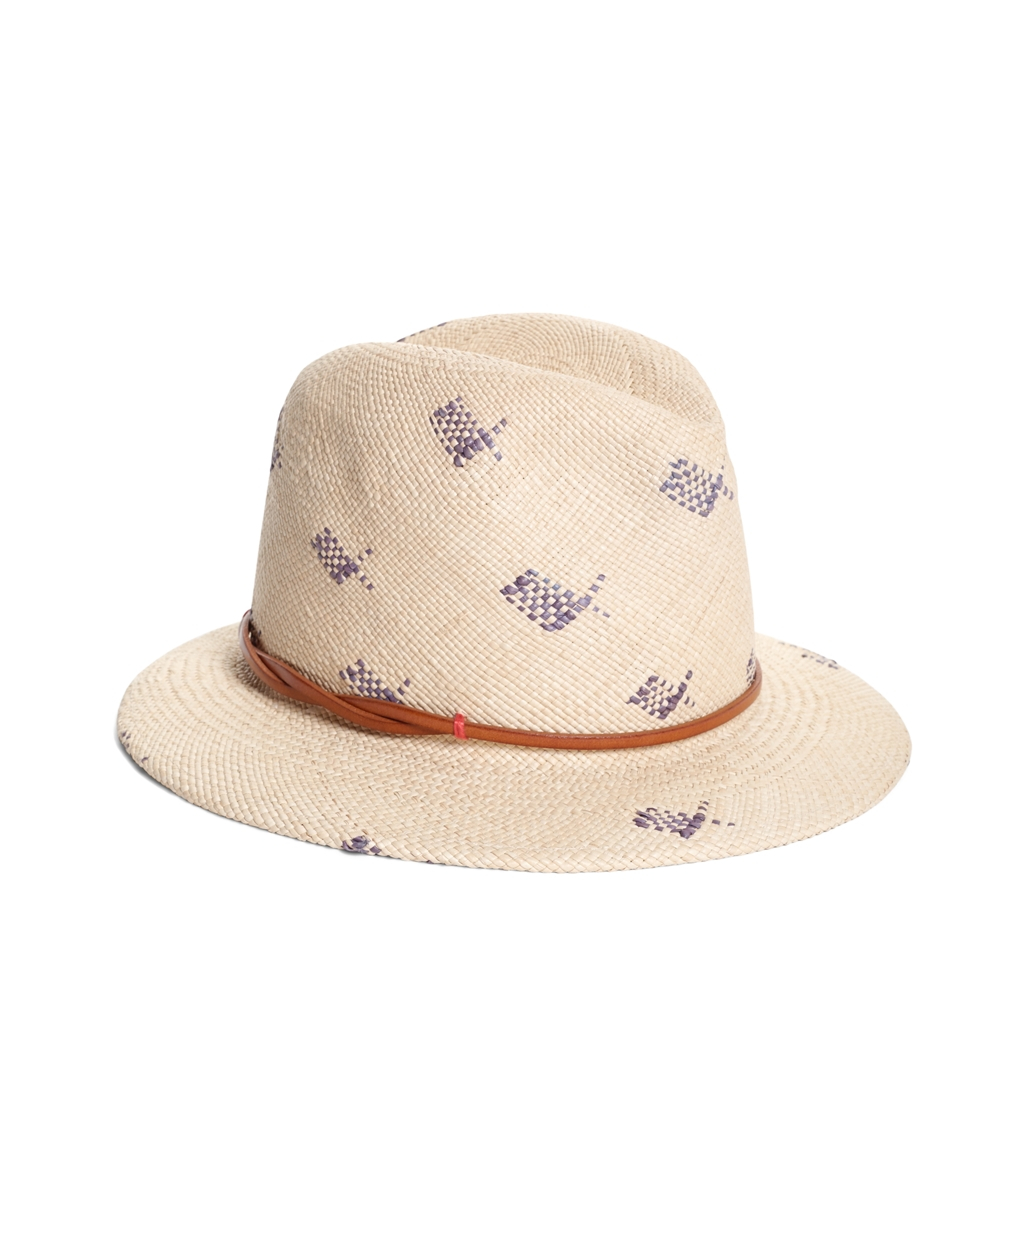 883ad20a25b Brooks Brothers Straw Fedora in Natural - Lyst